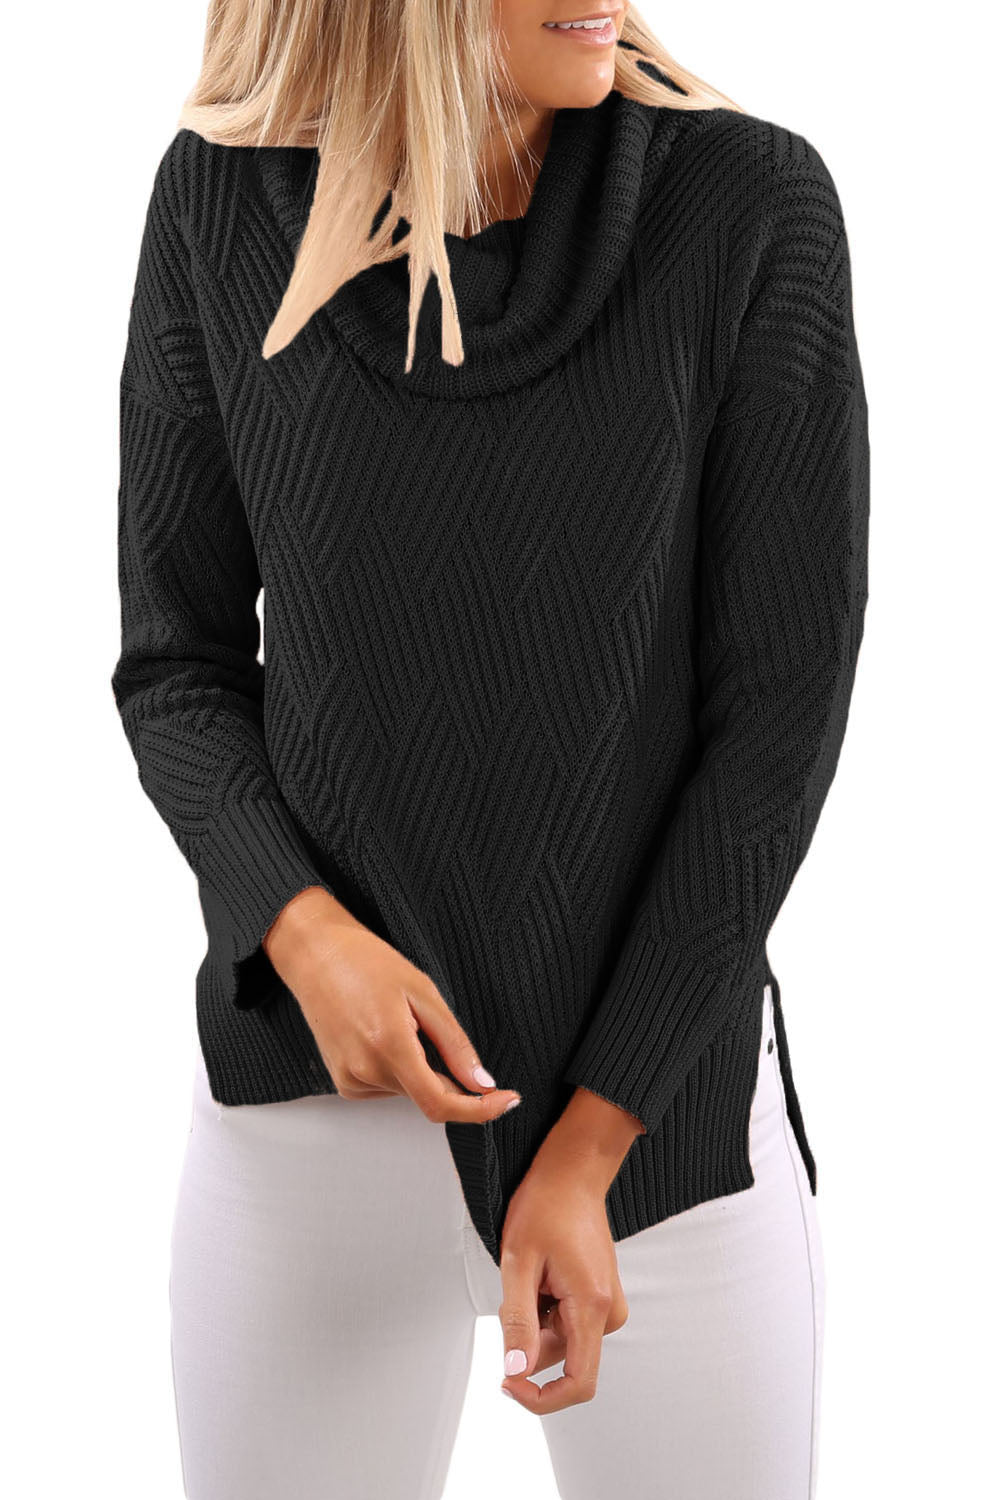 Chicloth Black Cowl Neck Side Split Sweater